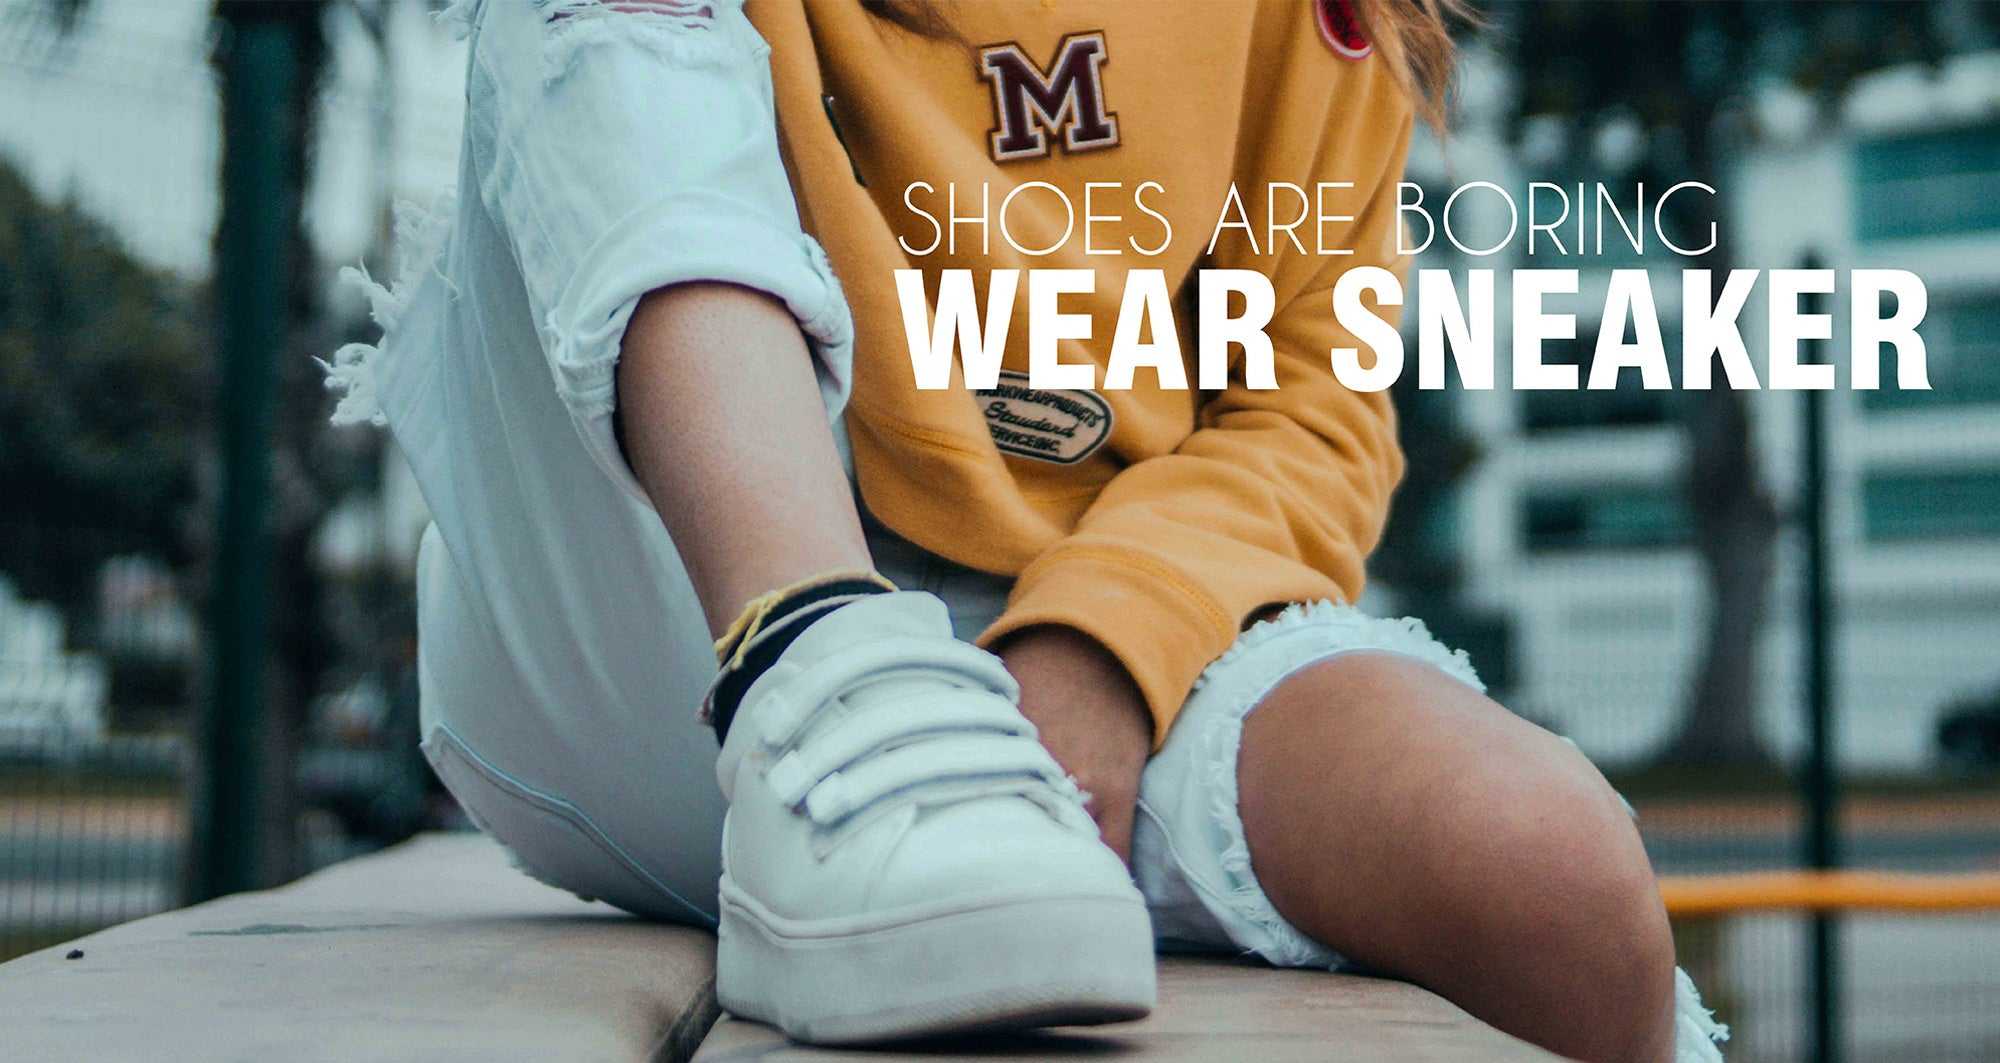 HACKS TO GET THE COLLEGE LOOK, RIGHT ON THE MONEY!